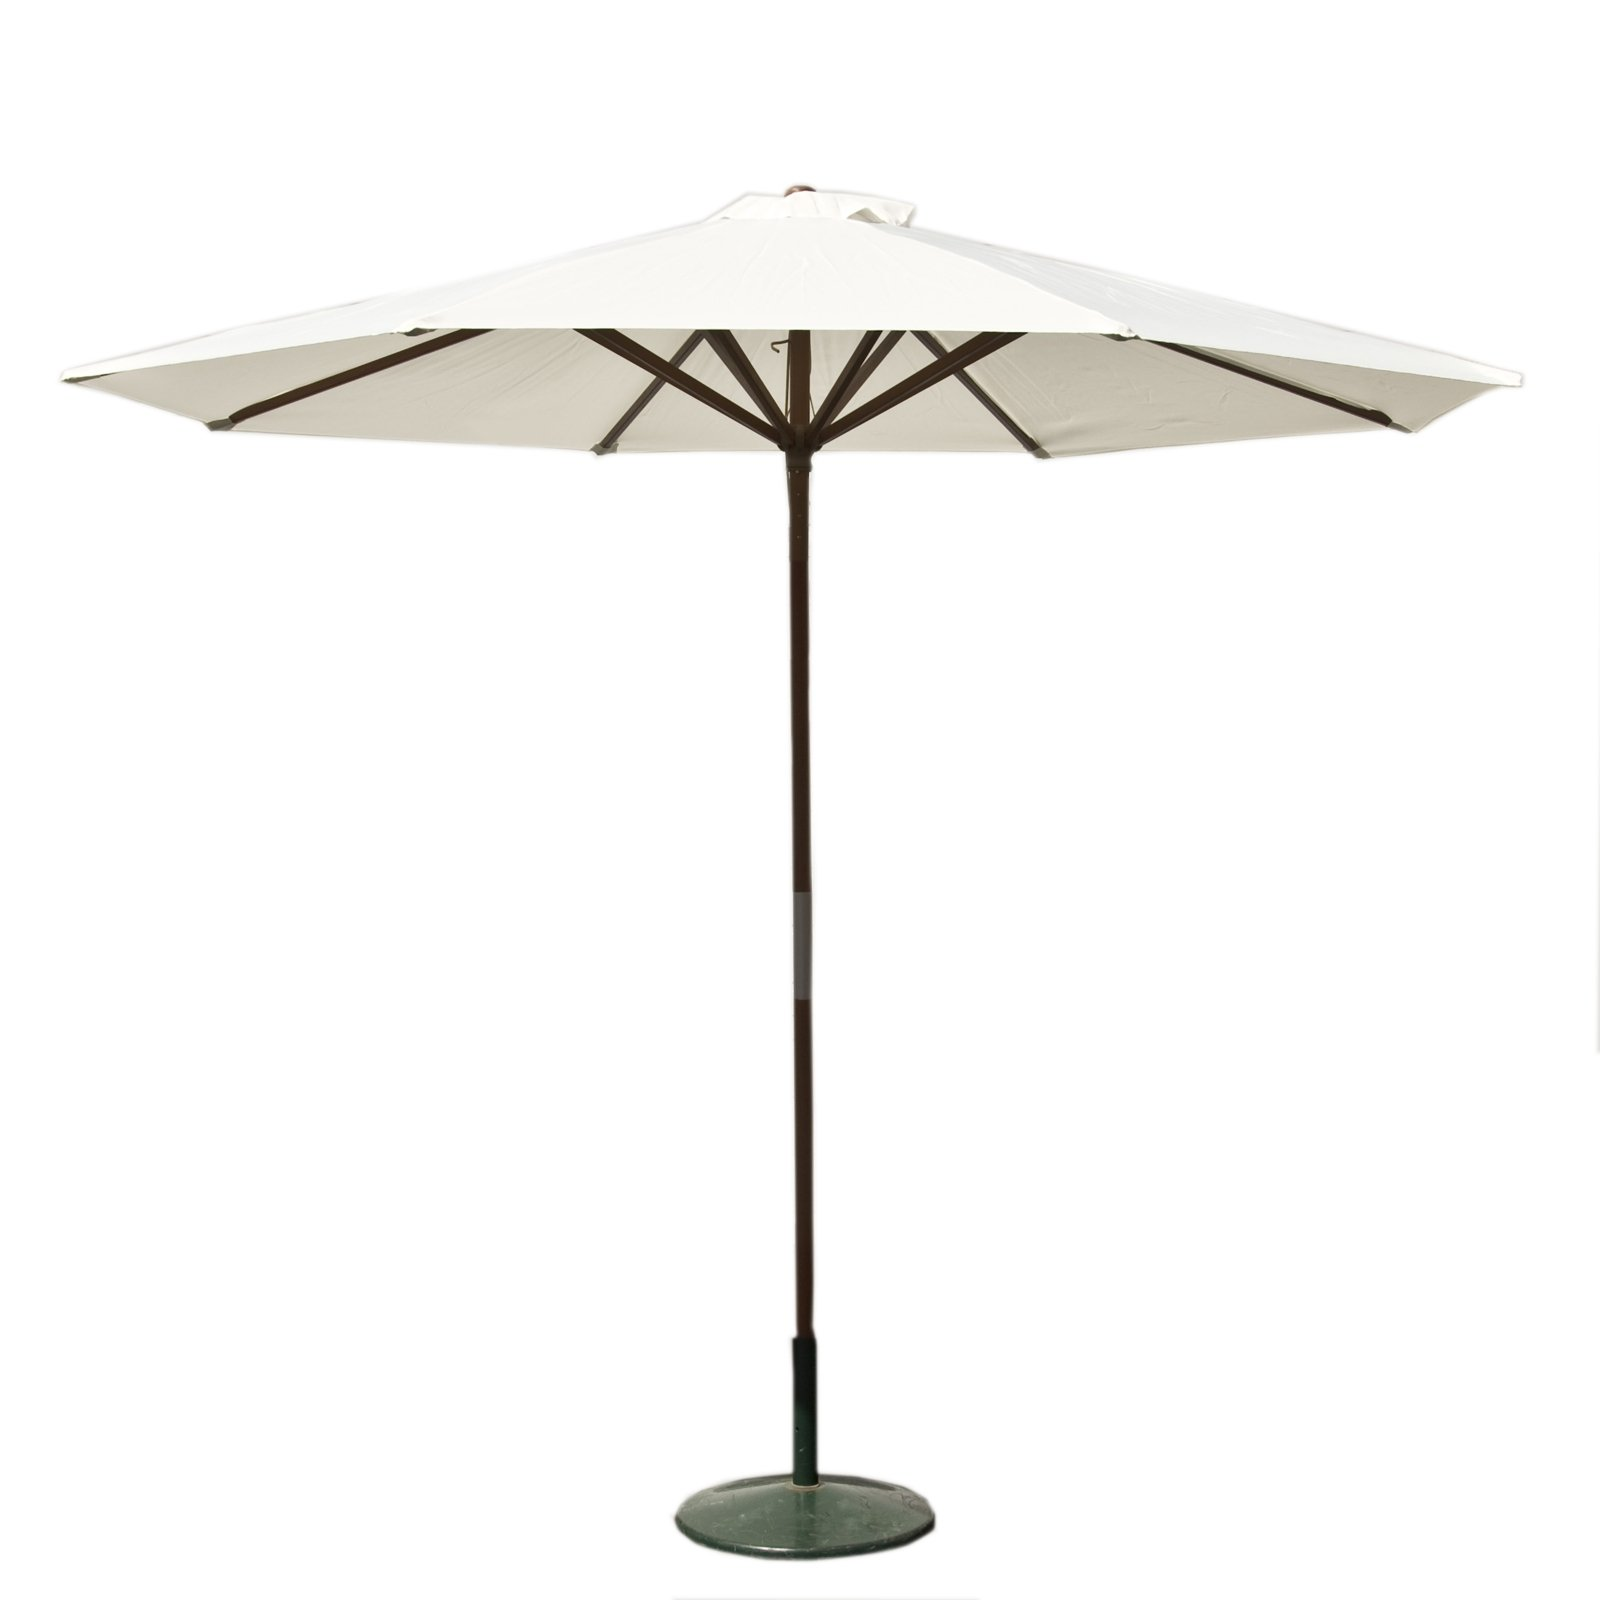 Classic Wood 9 foot Market Patio Umbrella - Natural